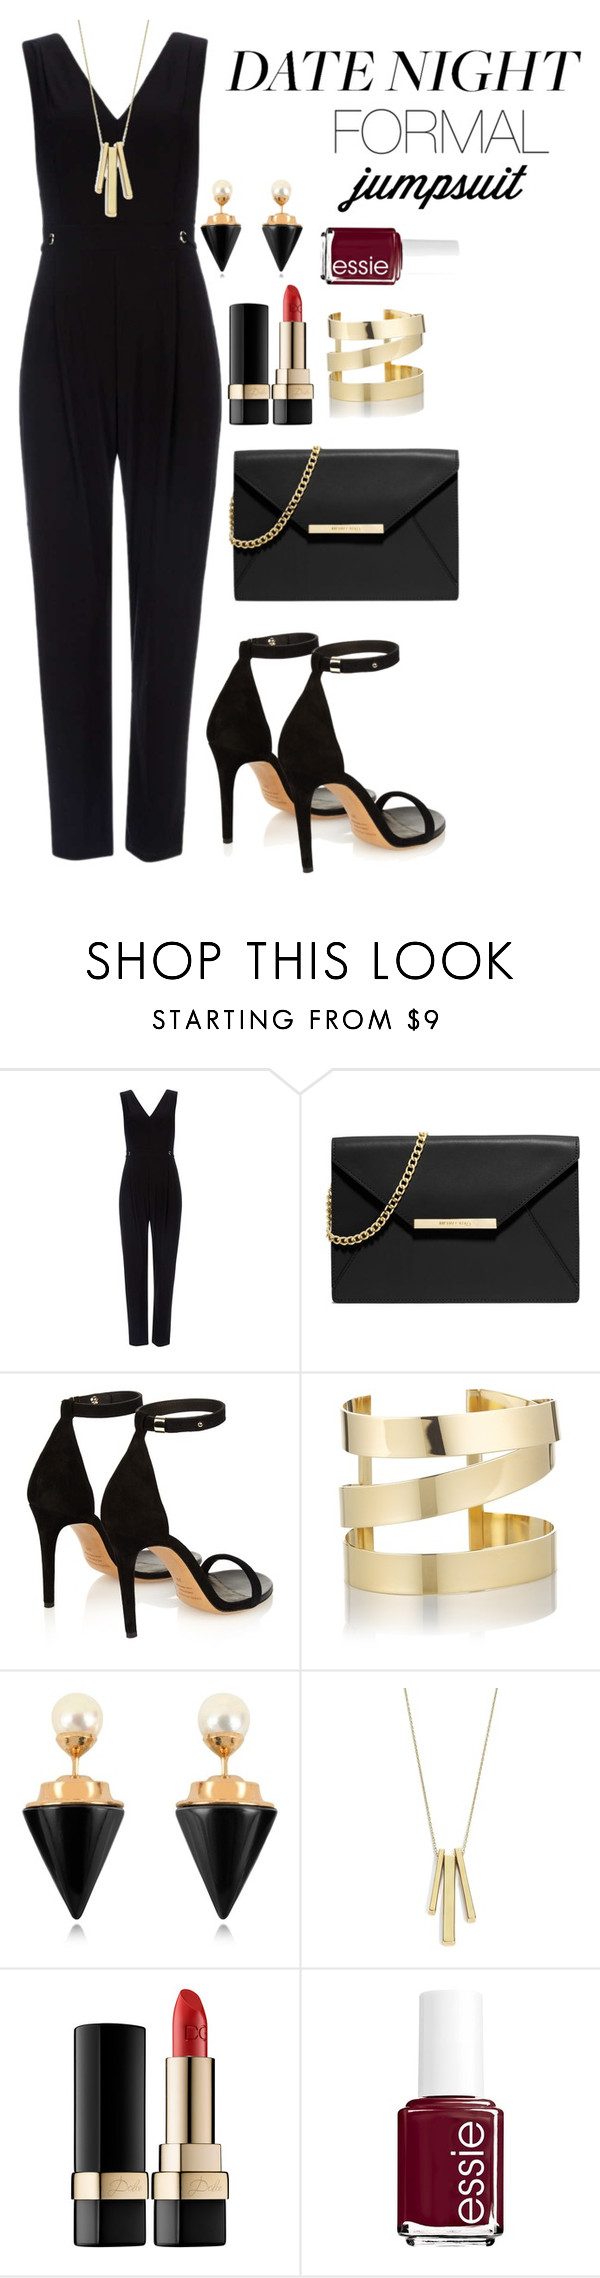 """""""Date night with jumpsuits"""" by rose-love-fashion ❤ liked on Polyvore featuring Wallis, MICHAEL Michael Kors, Isabel Marant, Étoile Isabel Marant, Vita Fede, Lauren Ralph Lauren, Dolce&Gabbana, Essie, DateNight and chic"""